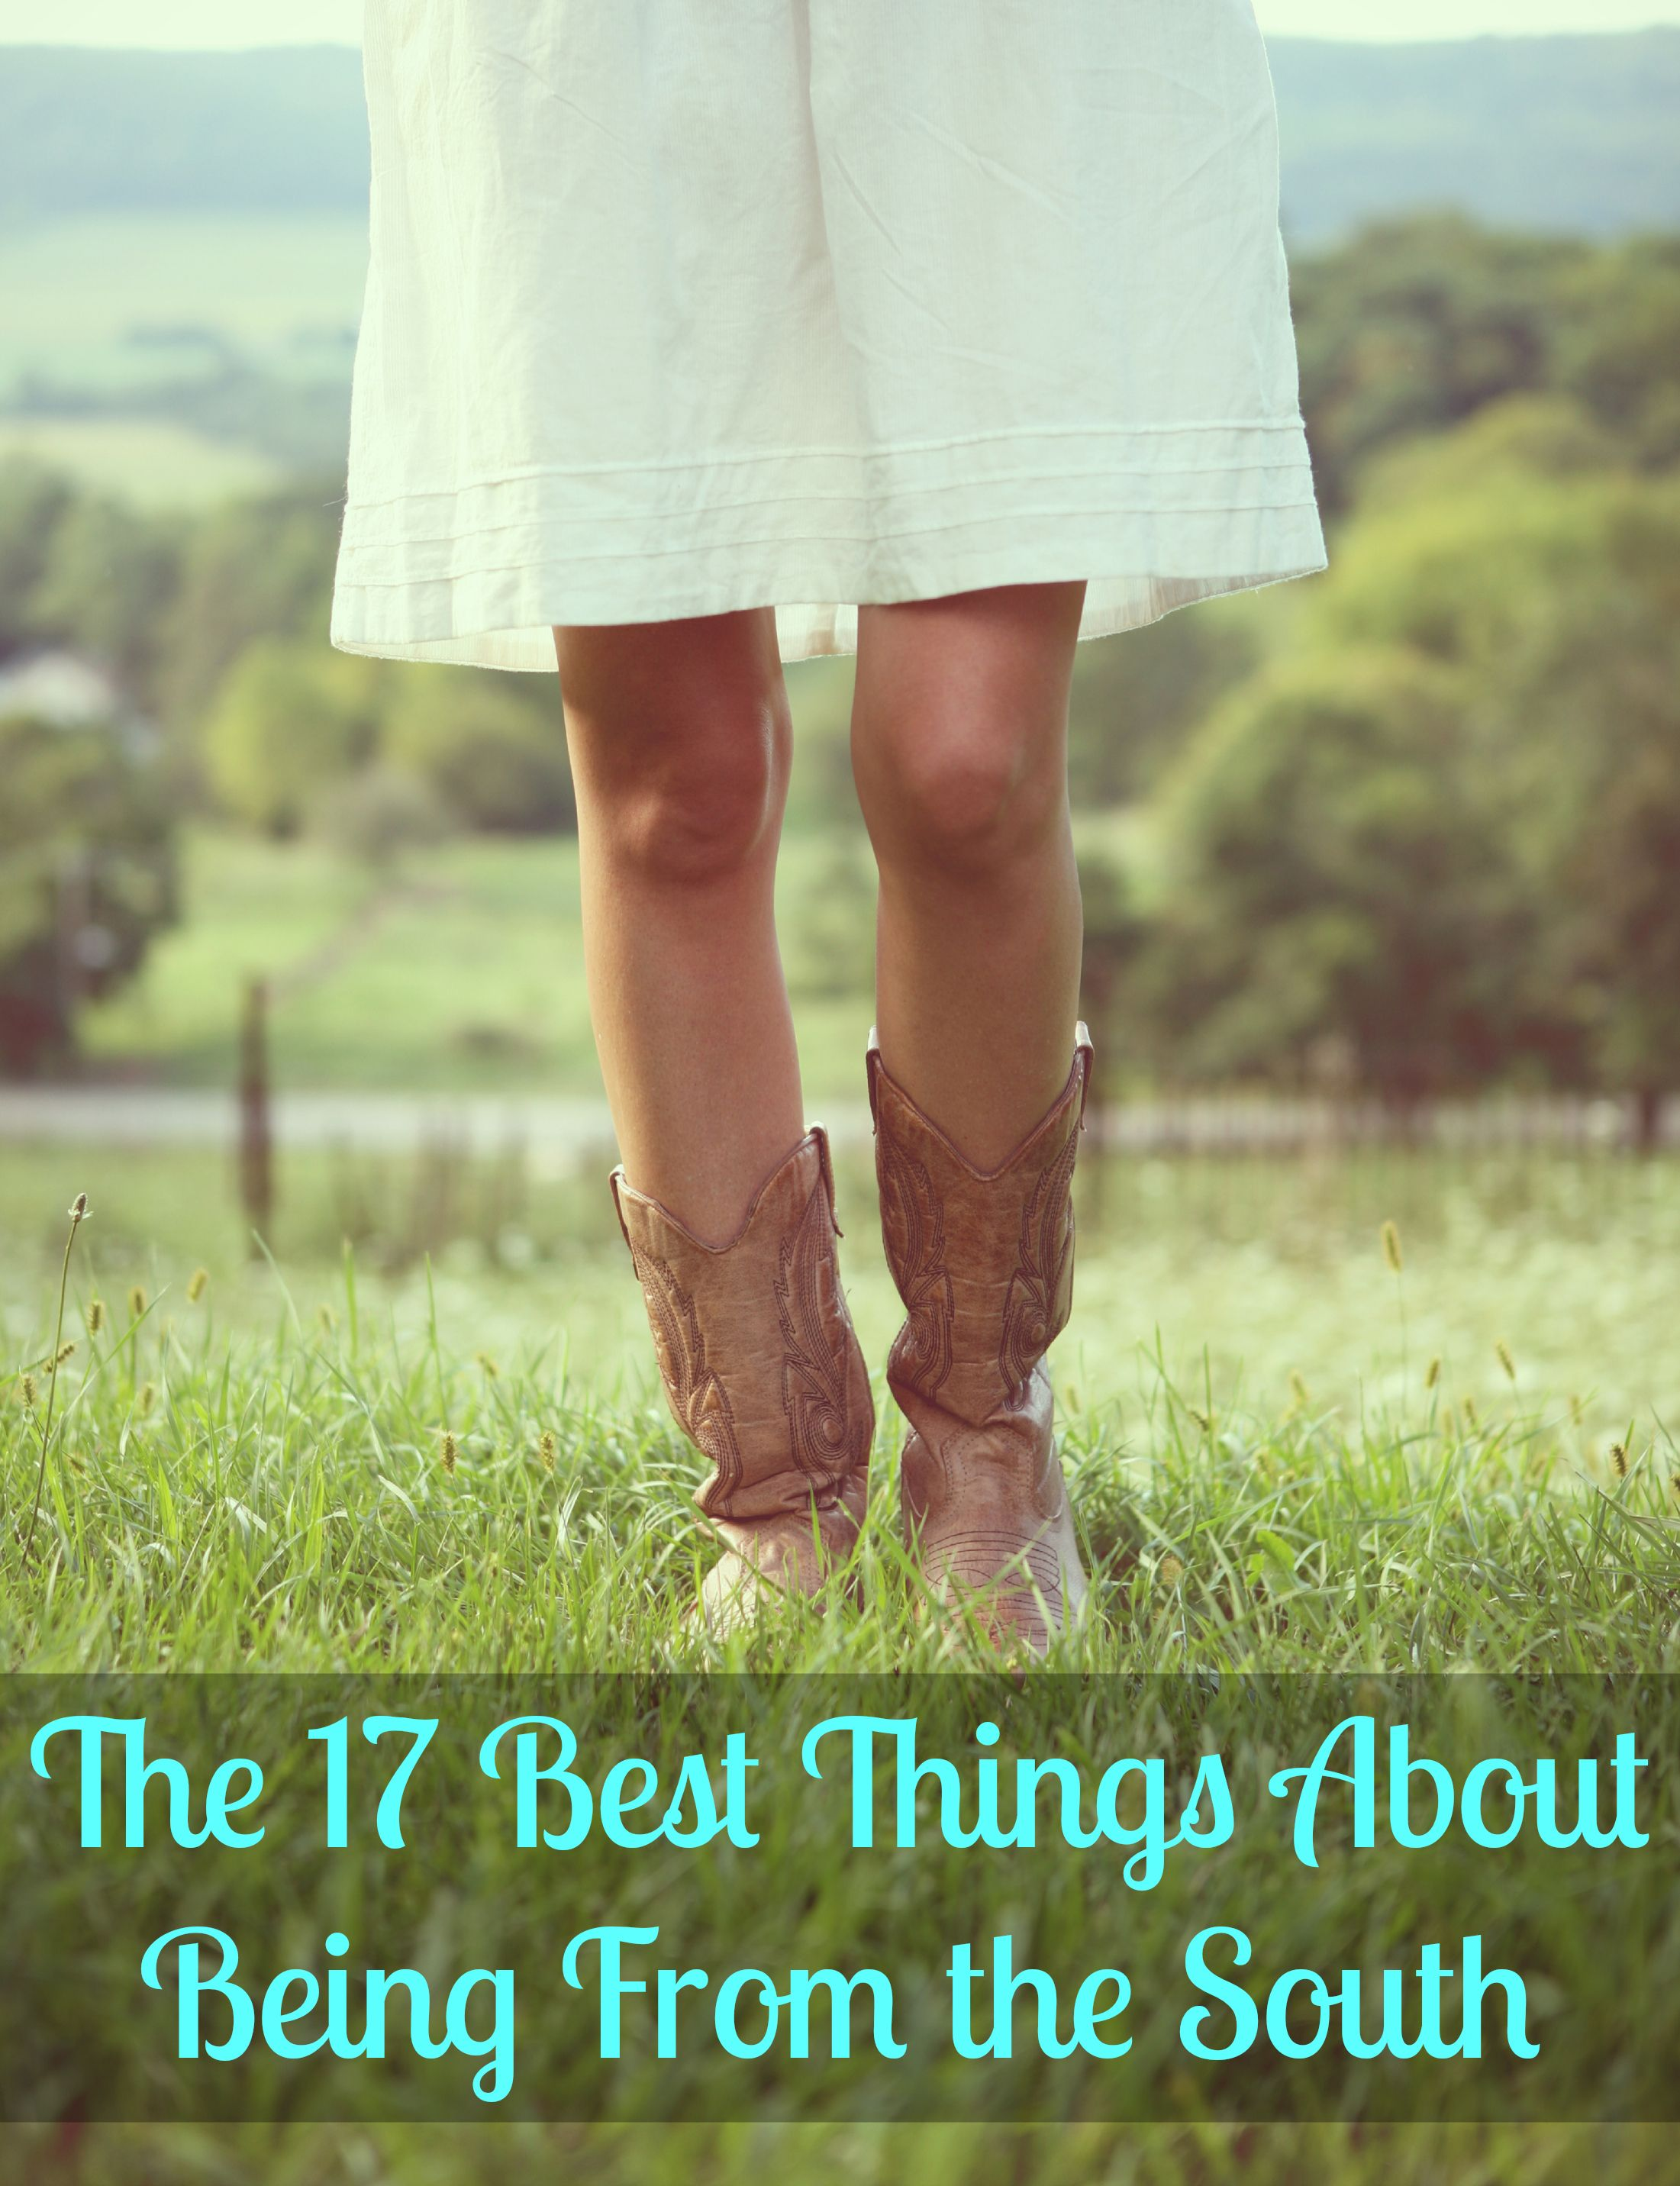 17 Things That I Would Tell My Future 17 Year Old Daughter: The 17 Best Things About Being From The South